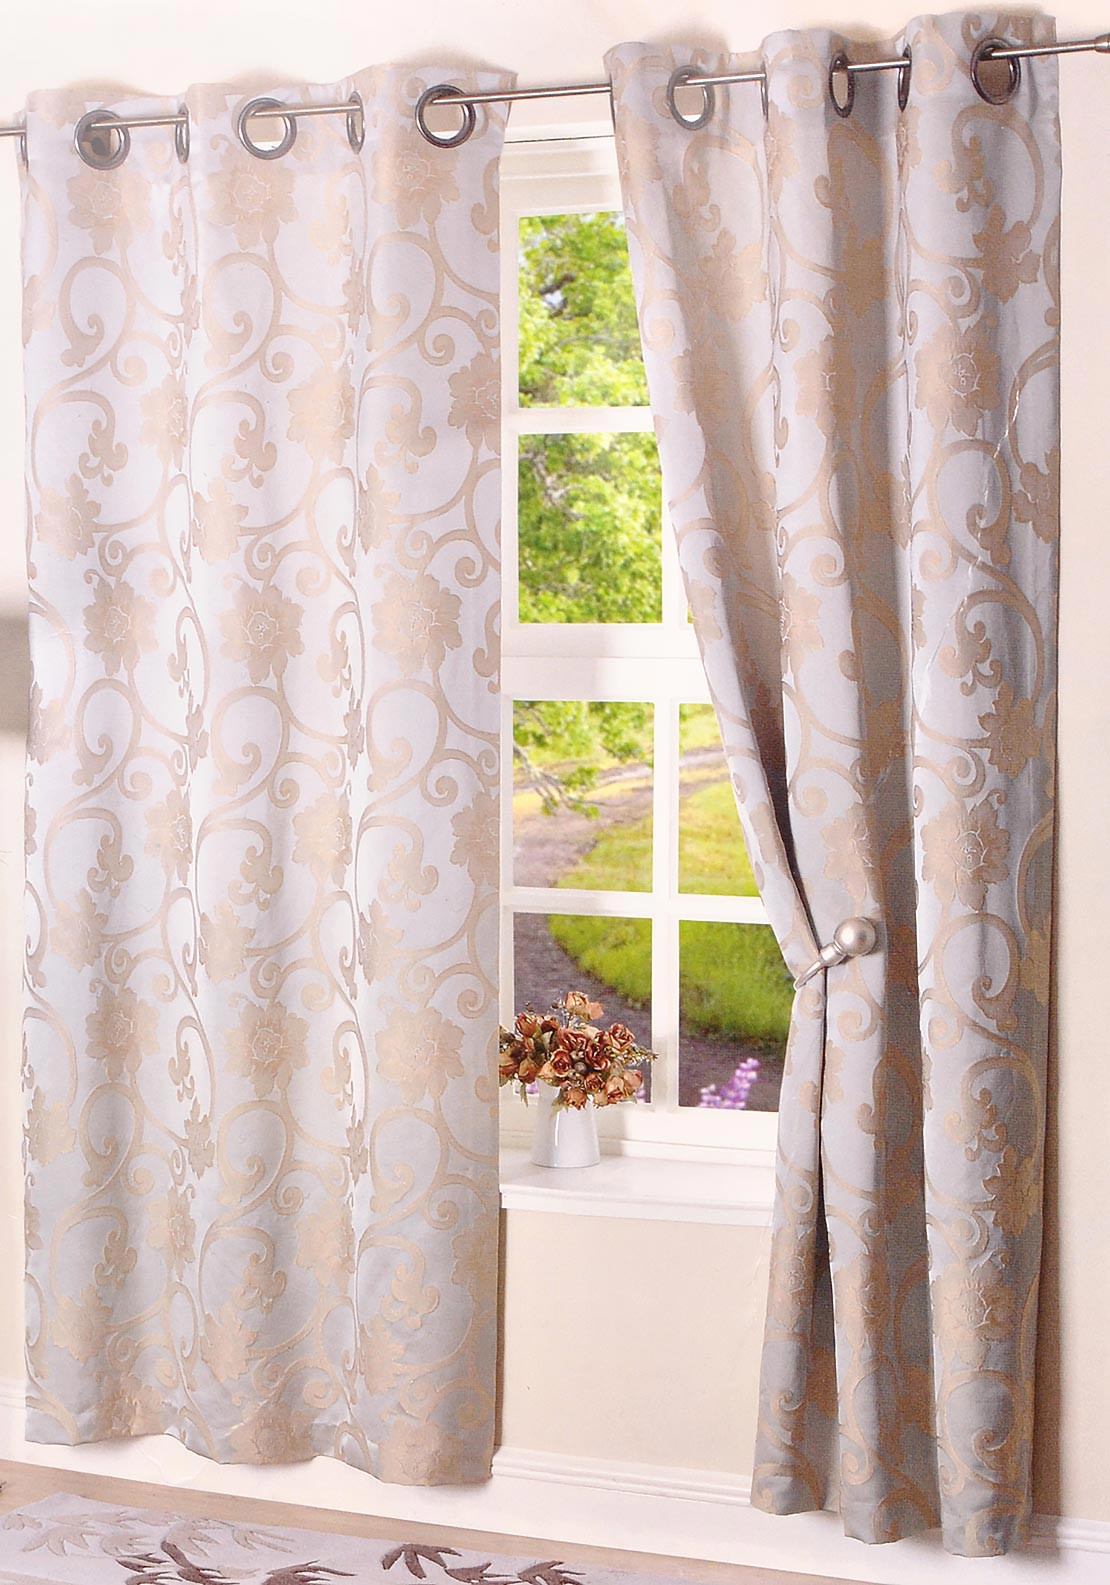 ready made interlined eyelet curtains curtain. Black Bedroom Furniture Sets. Home Design Ideas